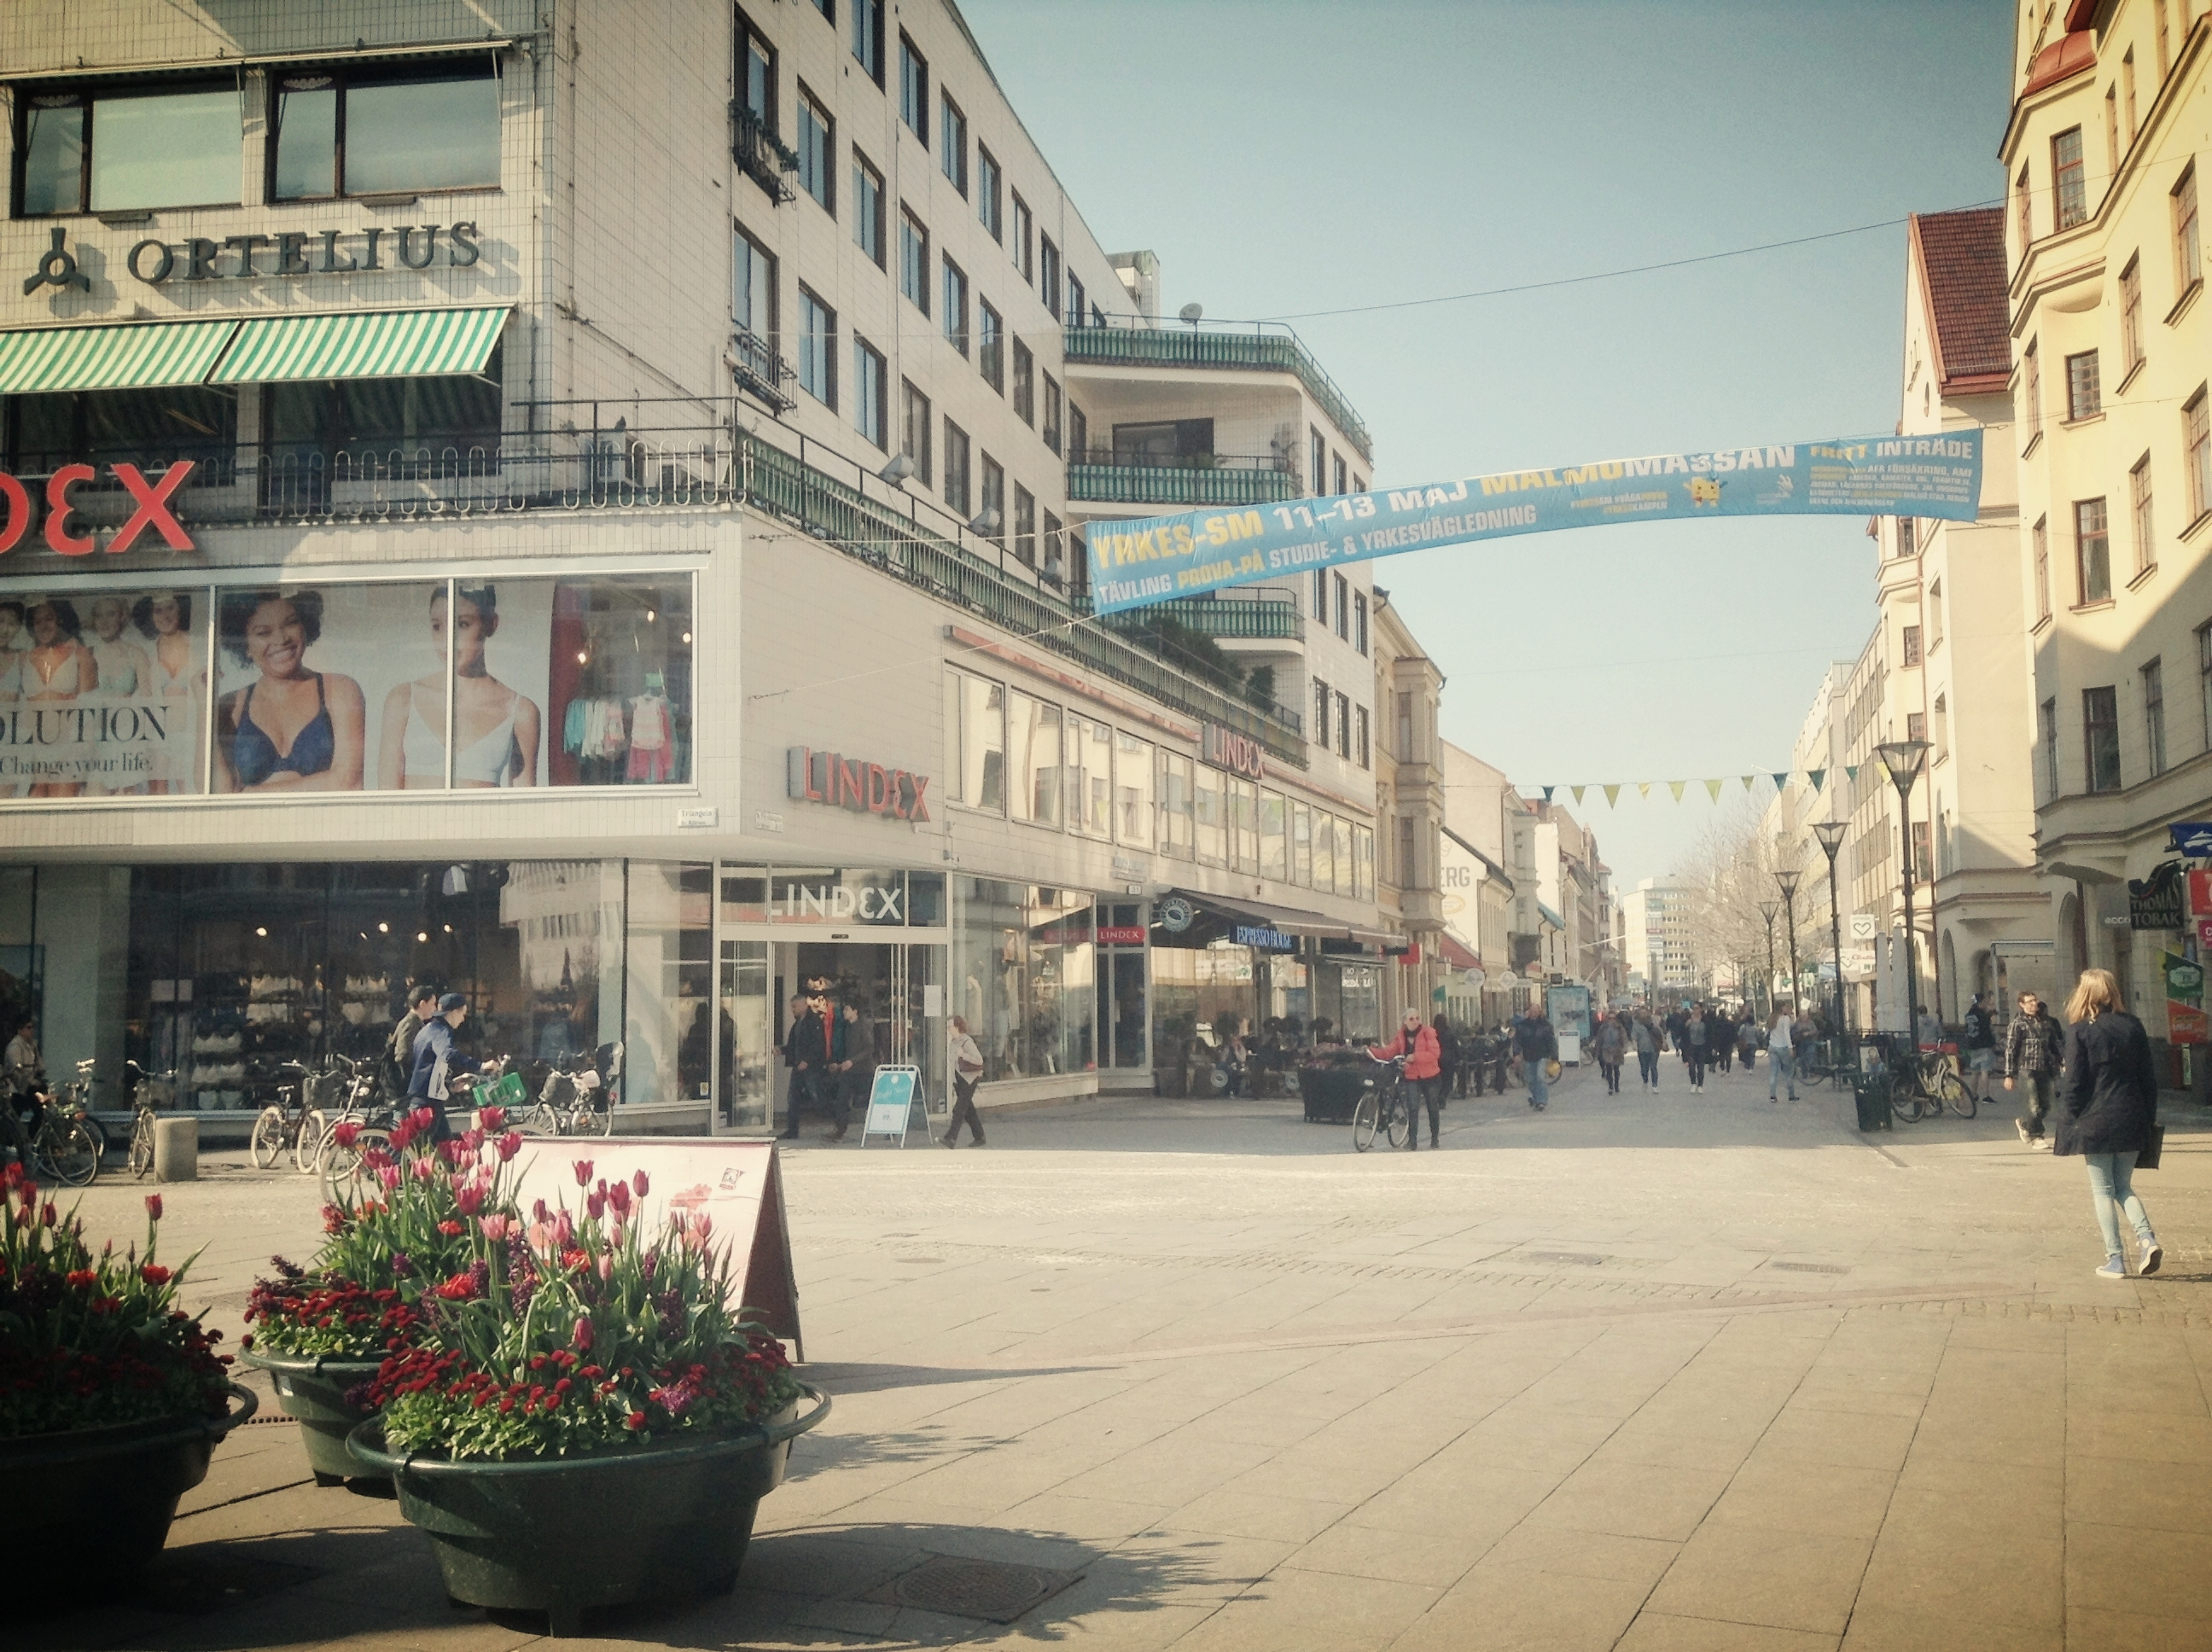 Images of Malmo city centre, Sweden